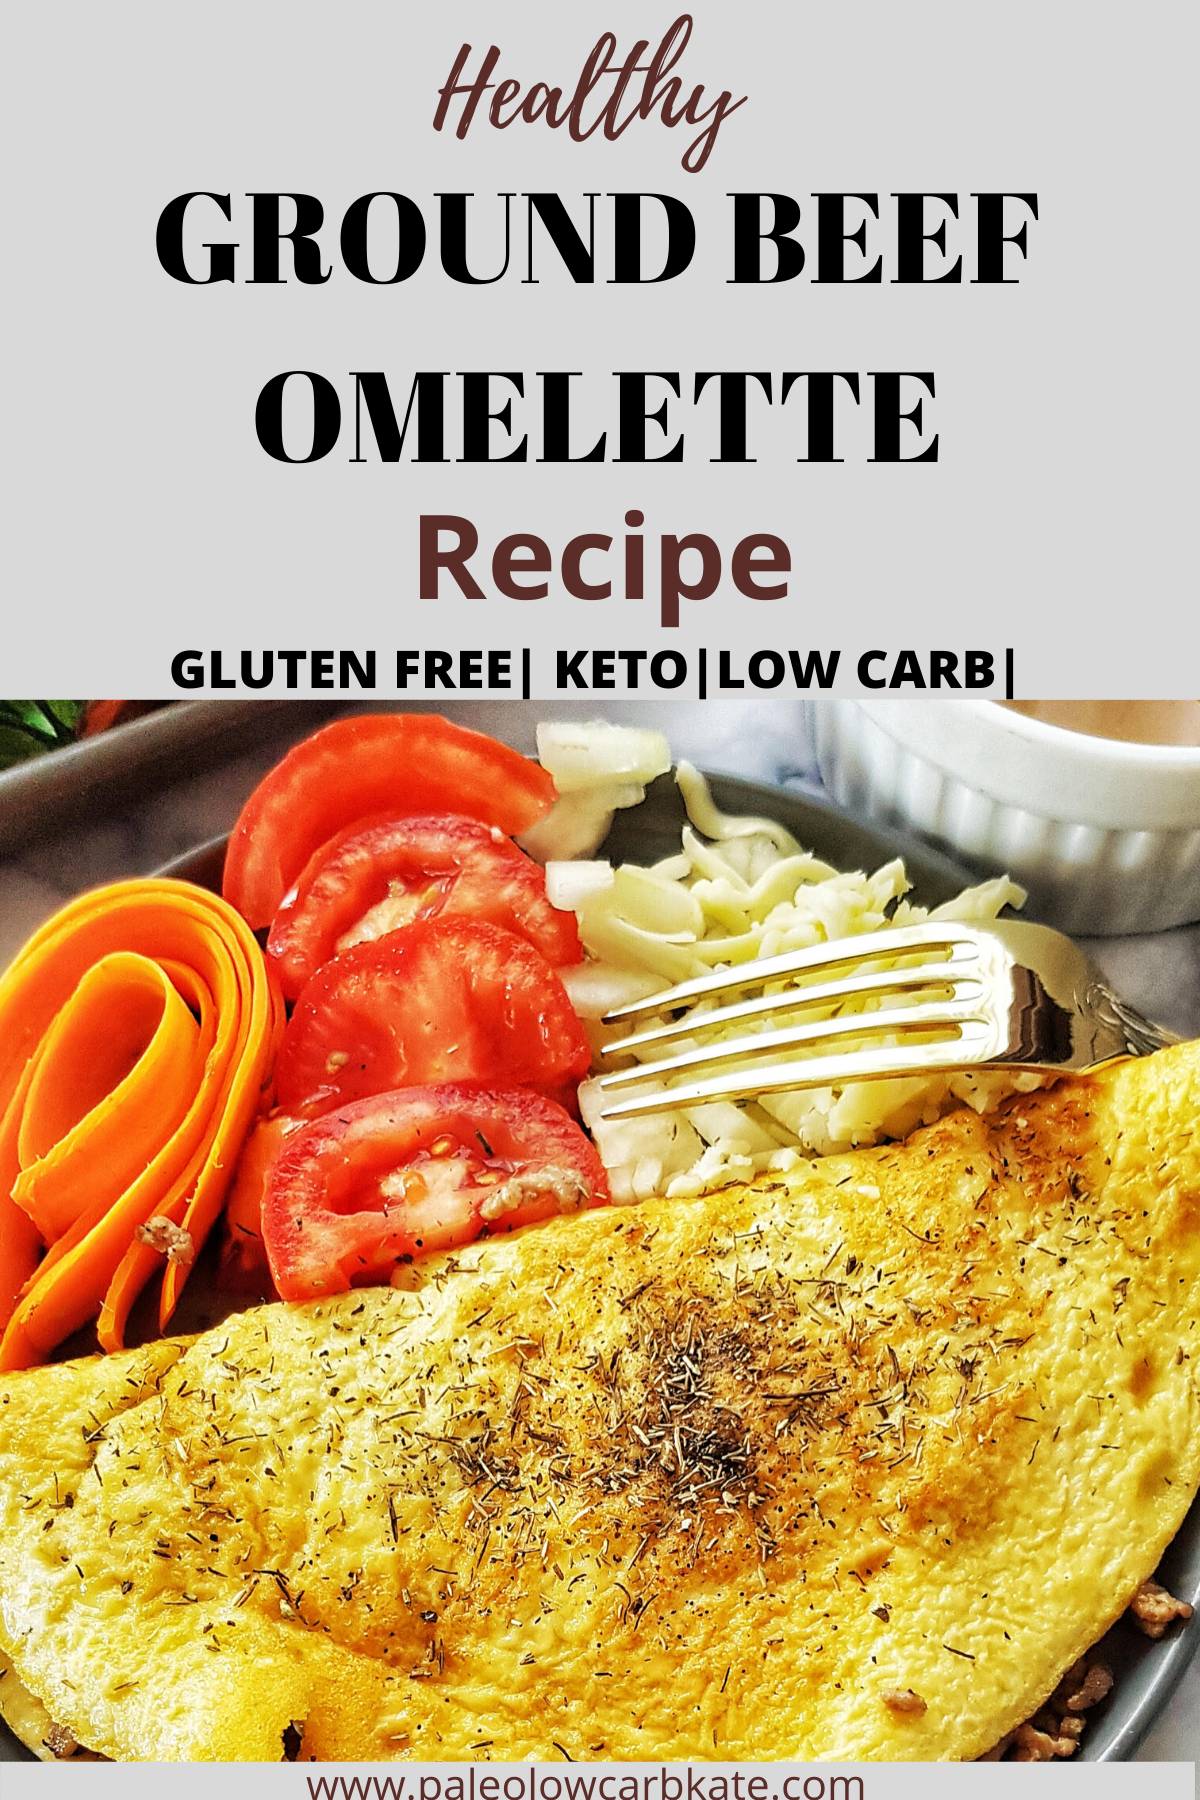 Enjoy this easy and healthy ground beef omelette recipe. Not only easy to make but tastes soooo good! Not to mention, filled with healthy fats - low carb/ keto #cleaneating #healthyrecipes # glutenfree #dinners  Best Picture For  Ground Beef sandwiches  For Your Taste  You are looking for something, and it is going to tell you exactly what you are looking for, and you didn't find that picture. Here you will find the most ... #Ground Beef Crescent Rolls #Ground Beef Korean #Ground Beef Tacos